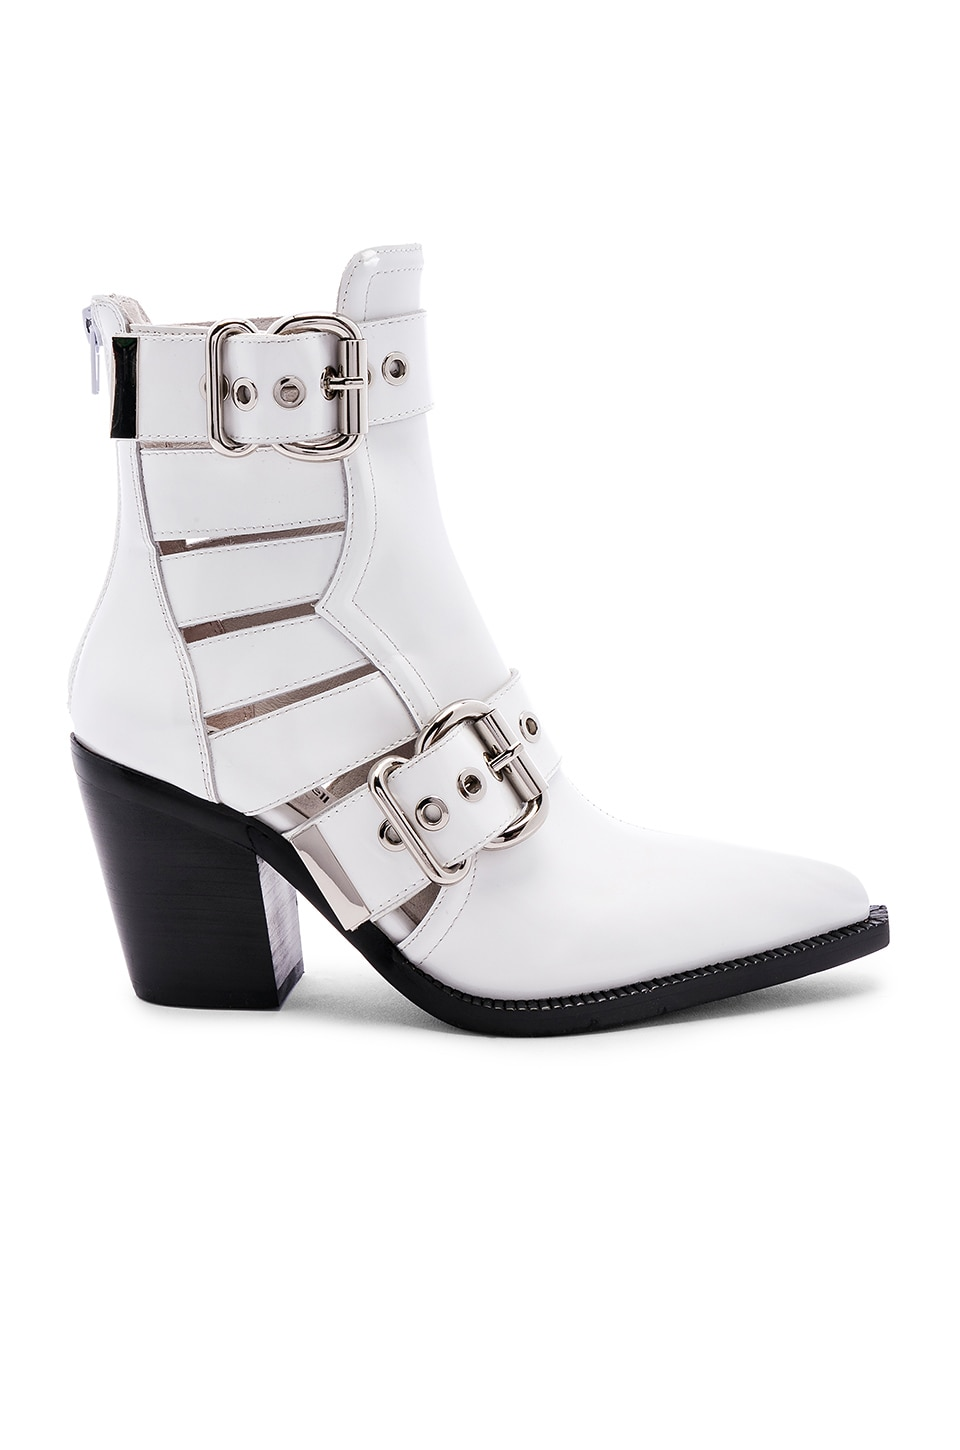 Jeffrey Campbell Guadalupe Bootie in White Box